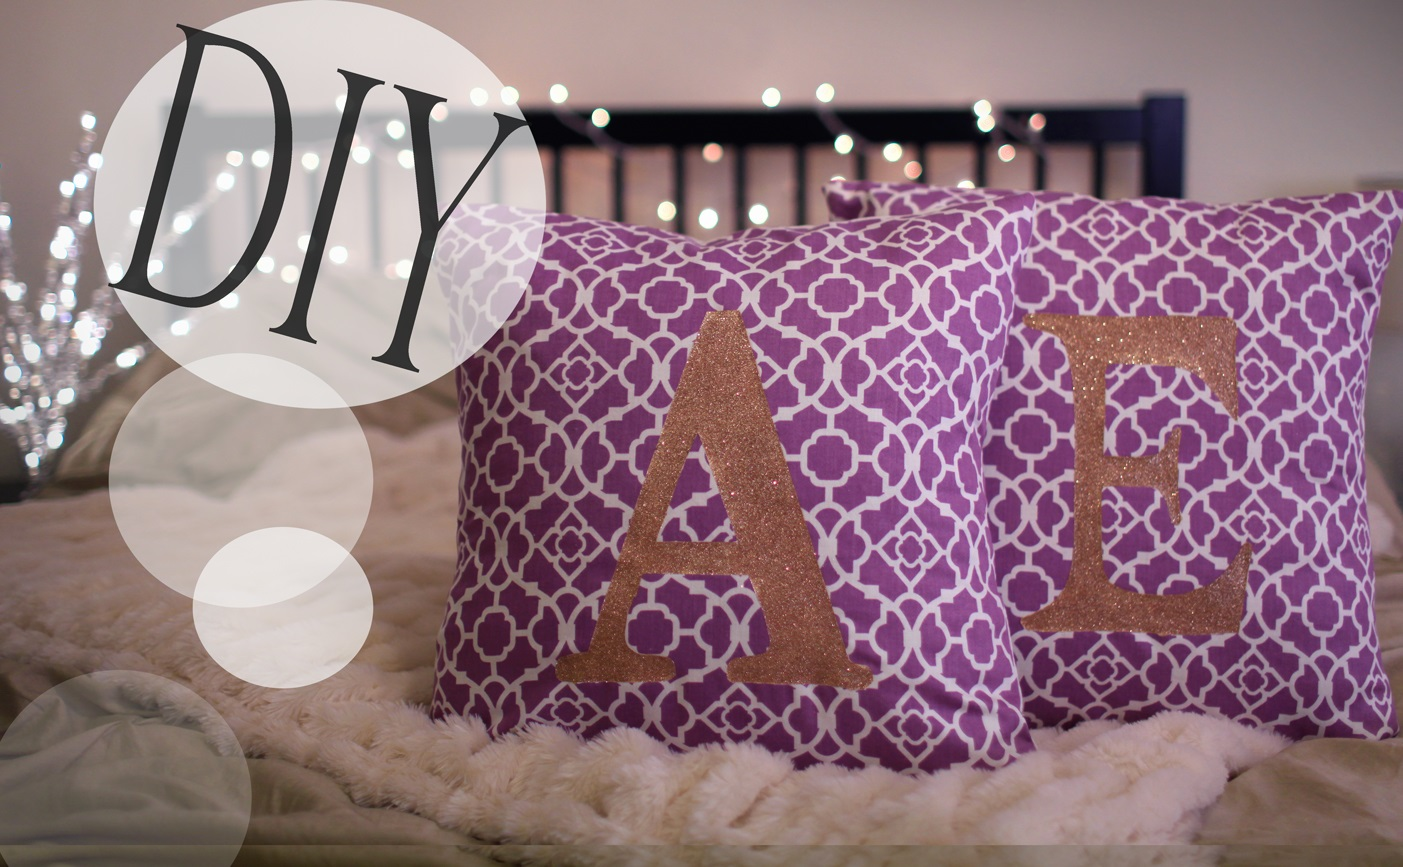 Sparkly monogrammed pillow cases